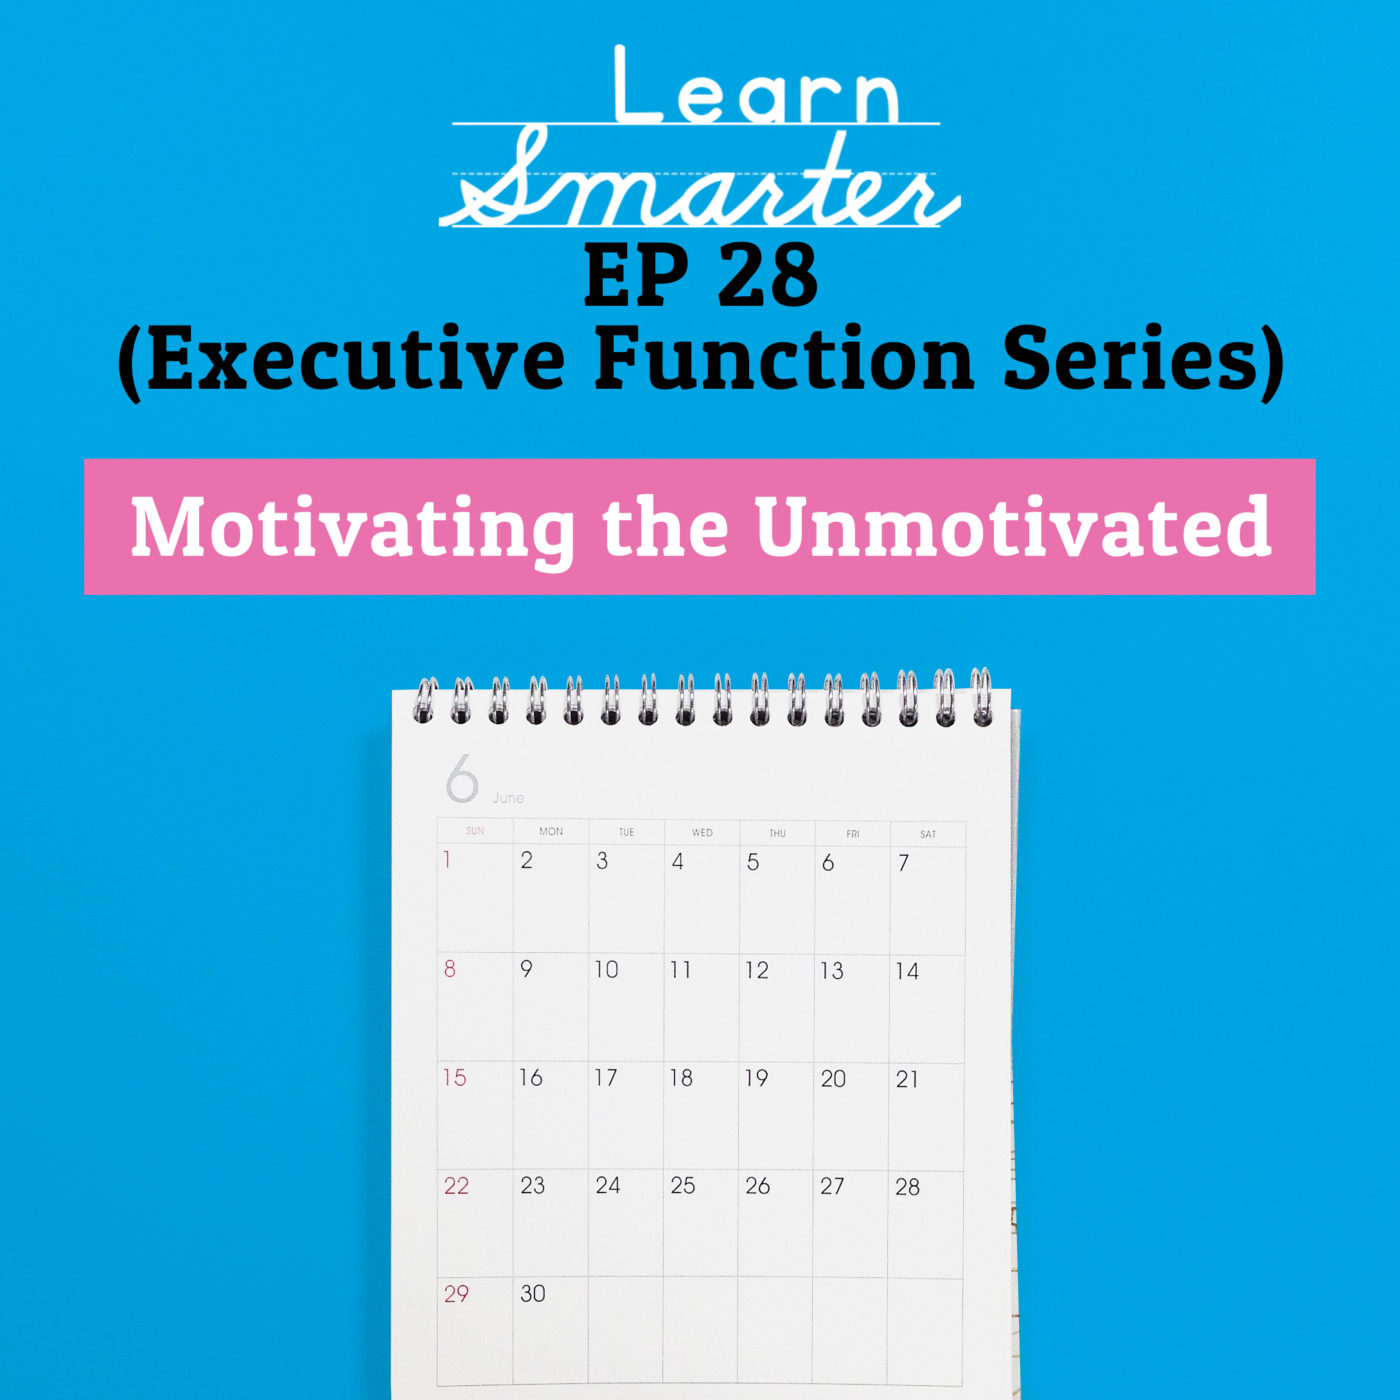 28: Motivating the Unmotivated